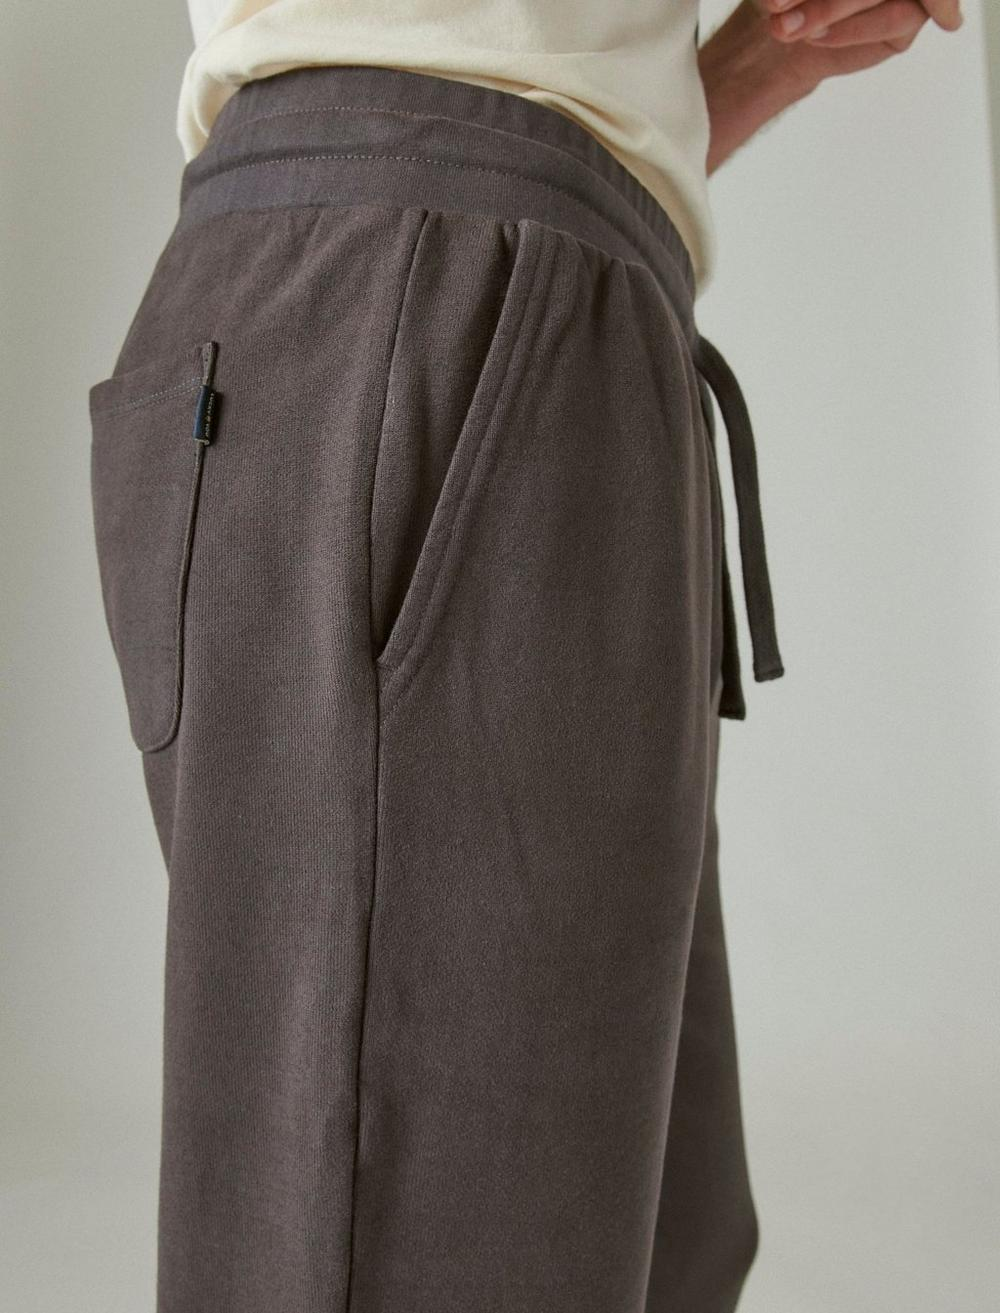 SUEDED FRENCH TERRY JOGGER PANT, image 6